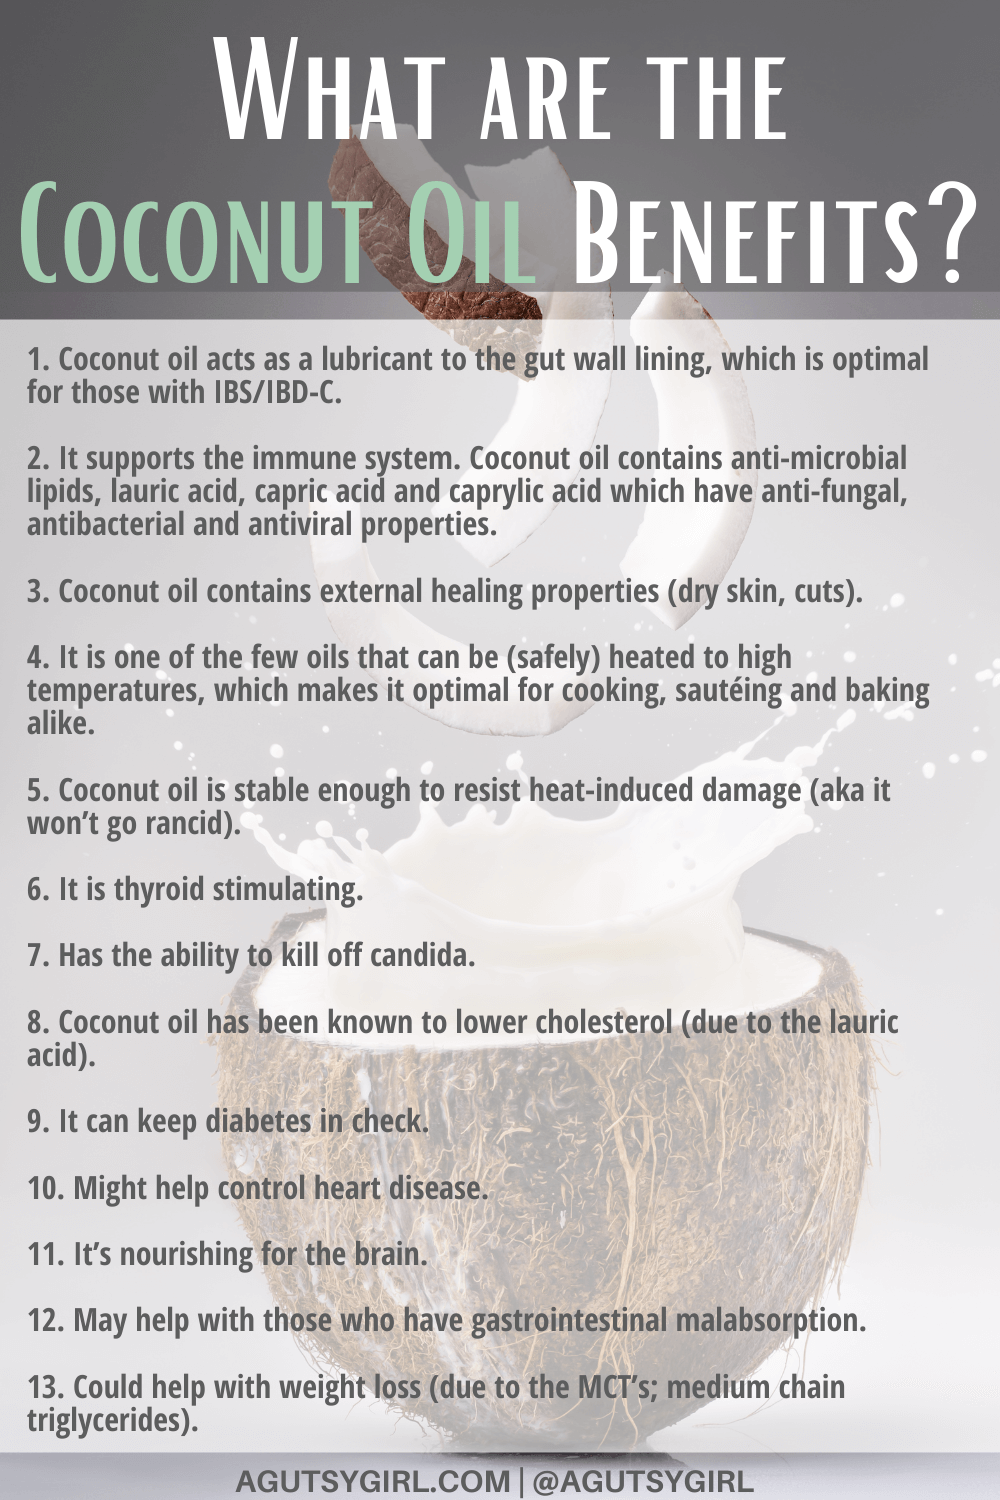 What are the Coconut Oil Benefits agutsygirl.com #coconutoil #coconut #coconutoilbenefits